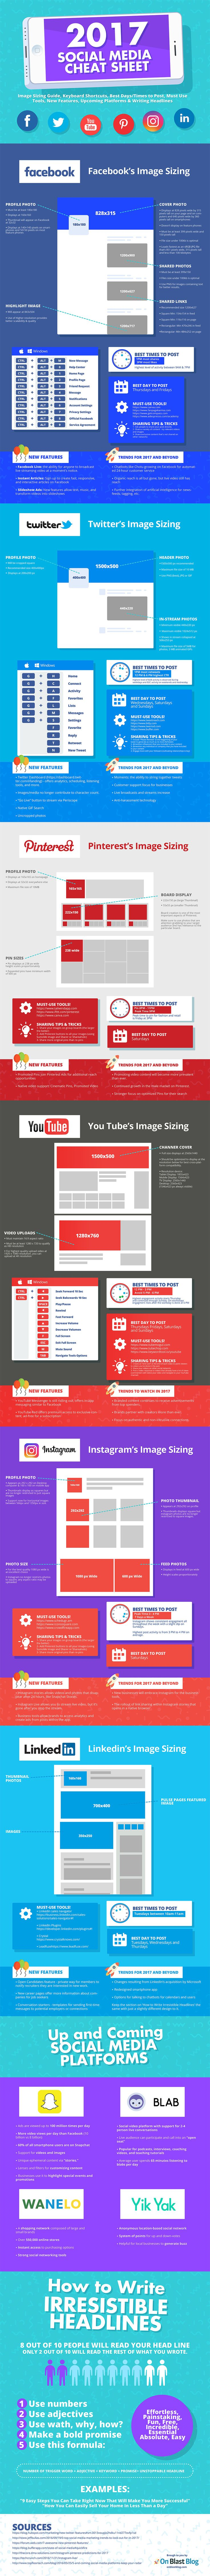 The 2017 Social Media Cheat Sheet What Beginners Need to Know